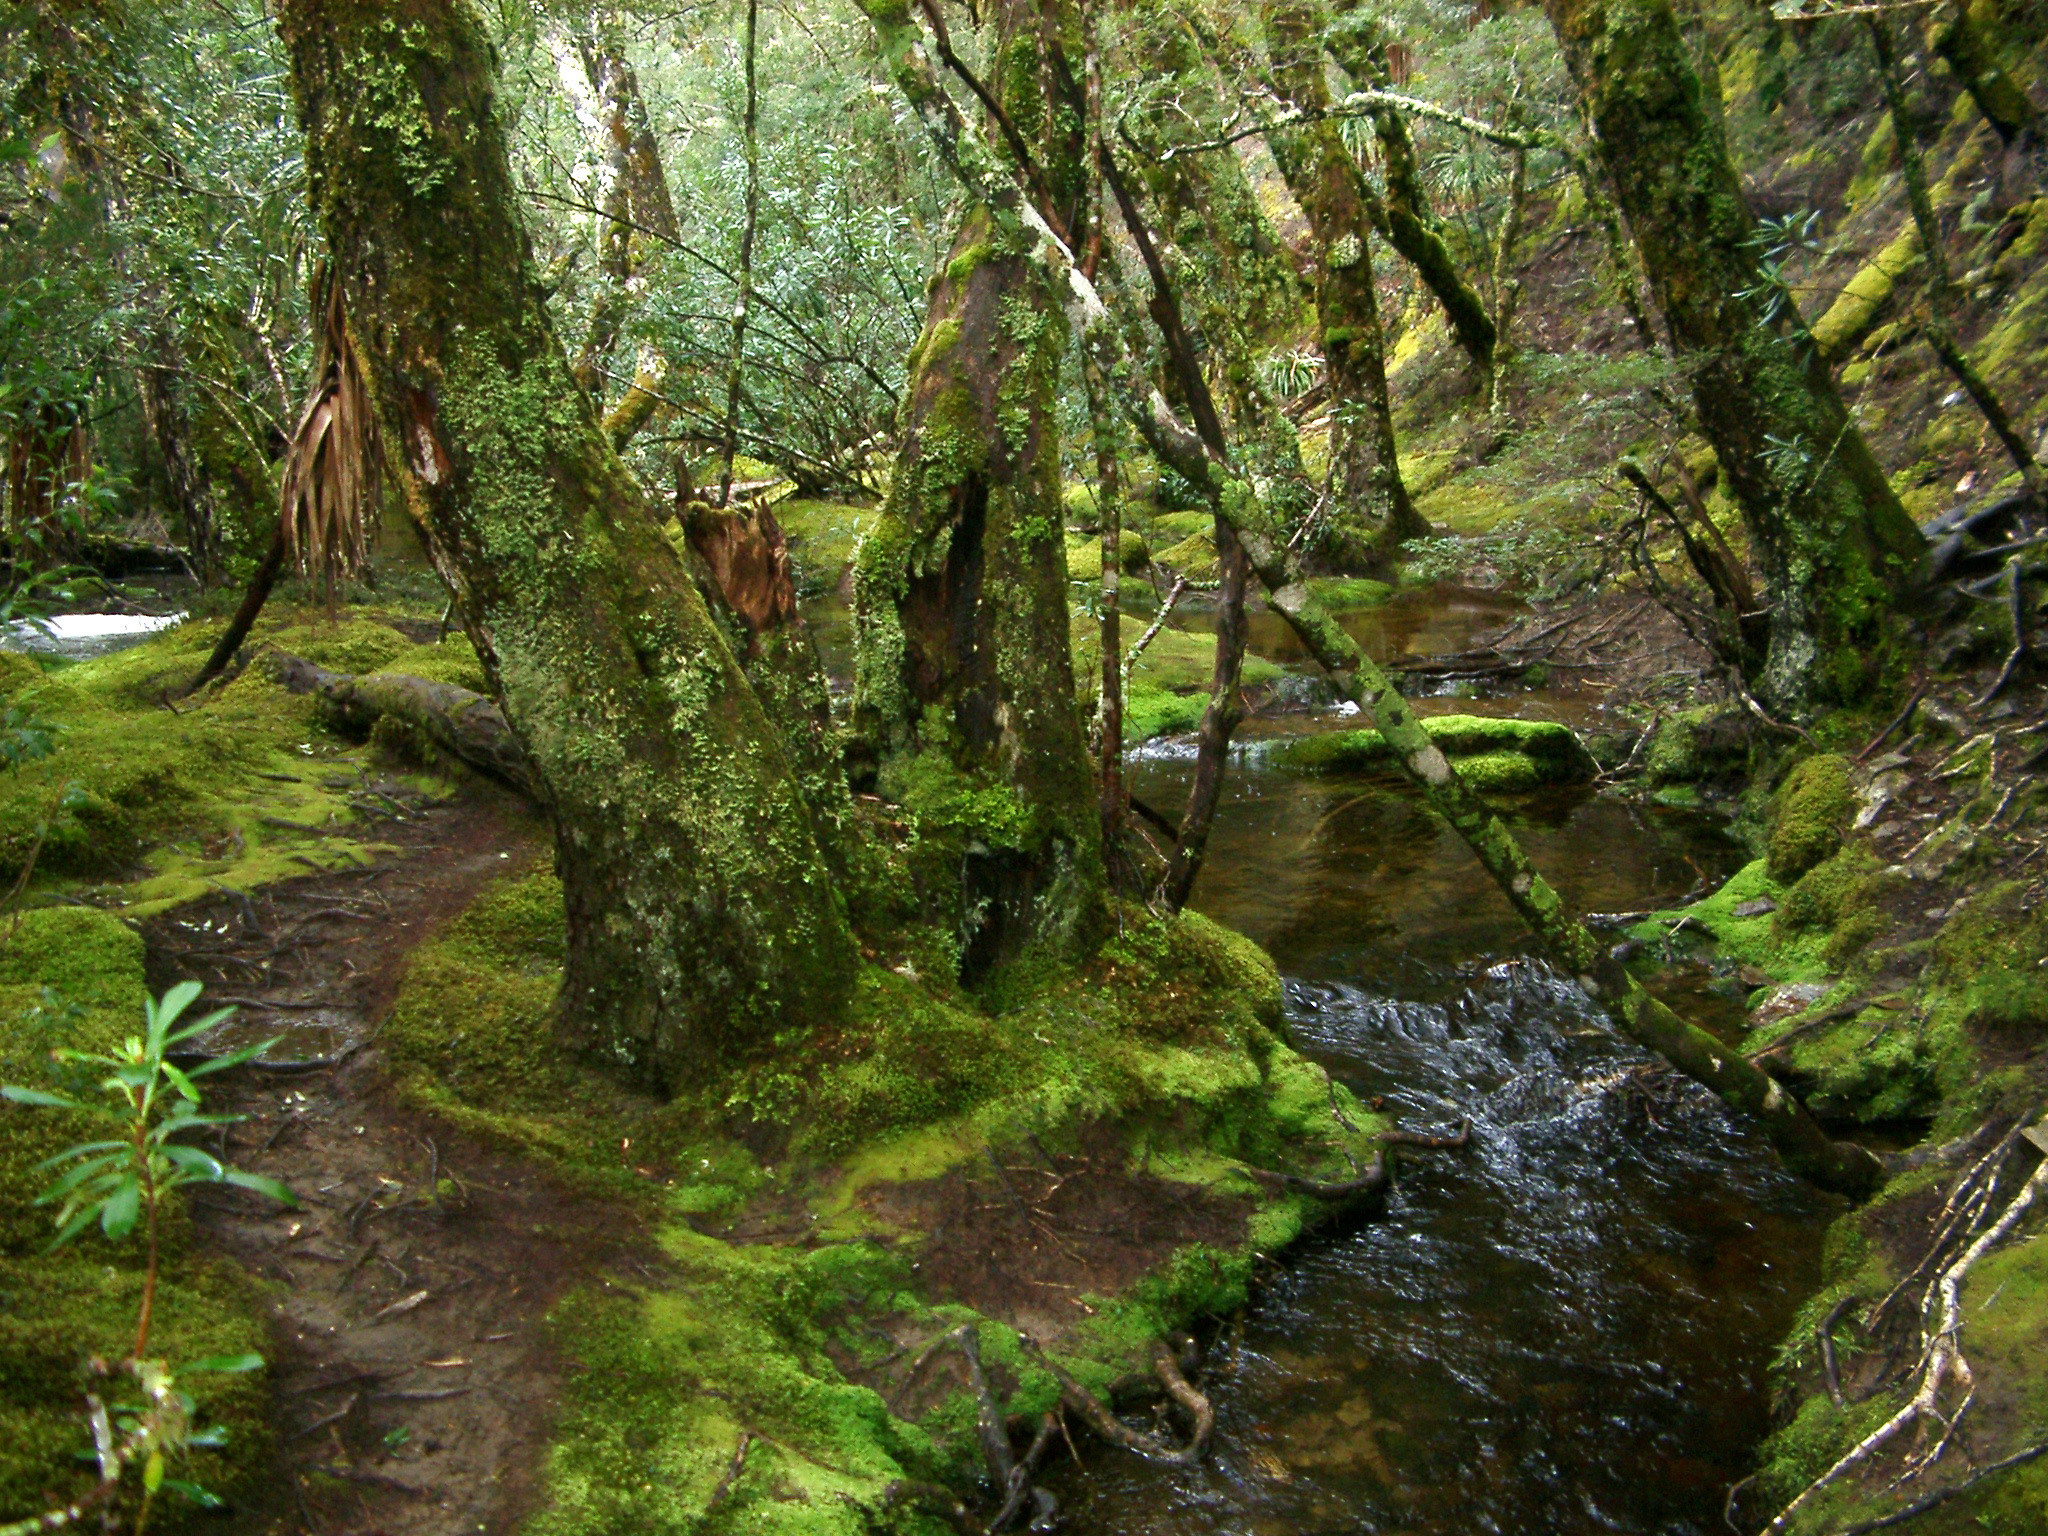 Woodland glade with a mossy river flowing between lichen covered trees in a lush natural background landscape